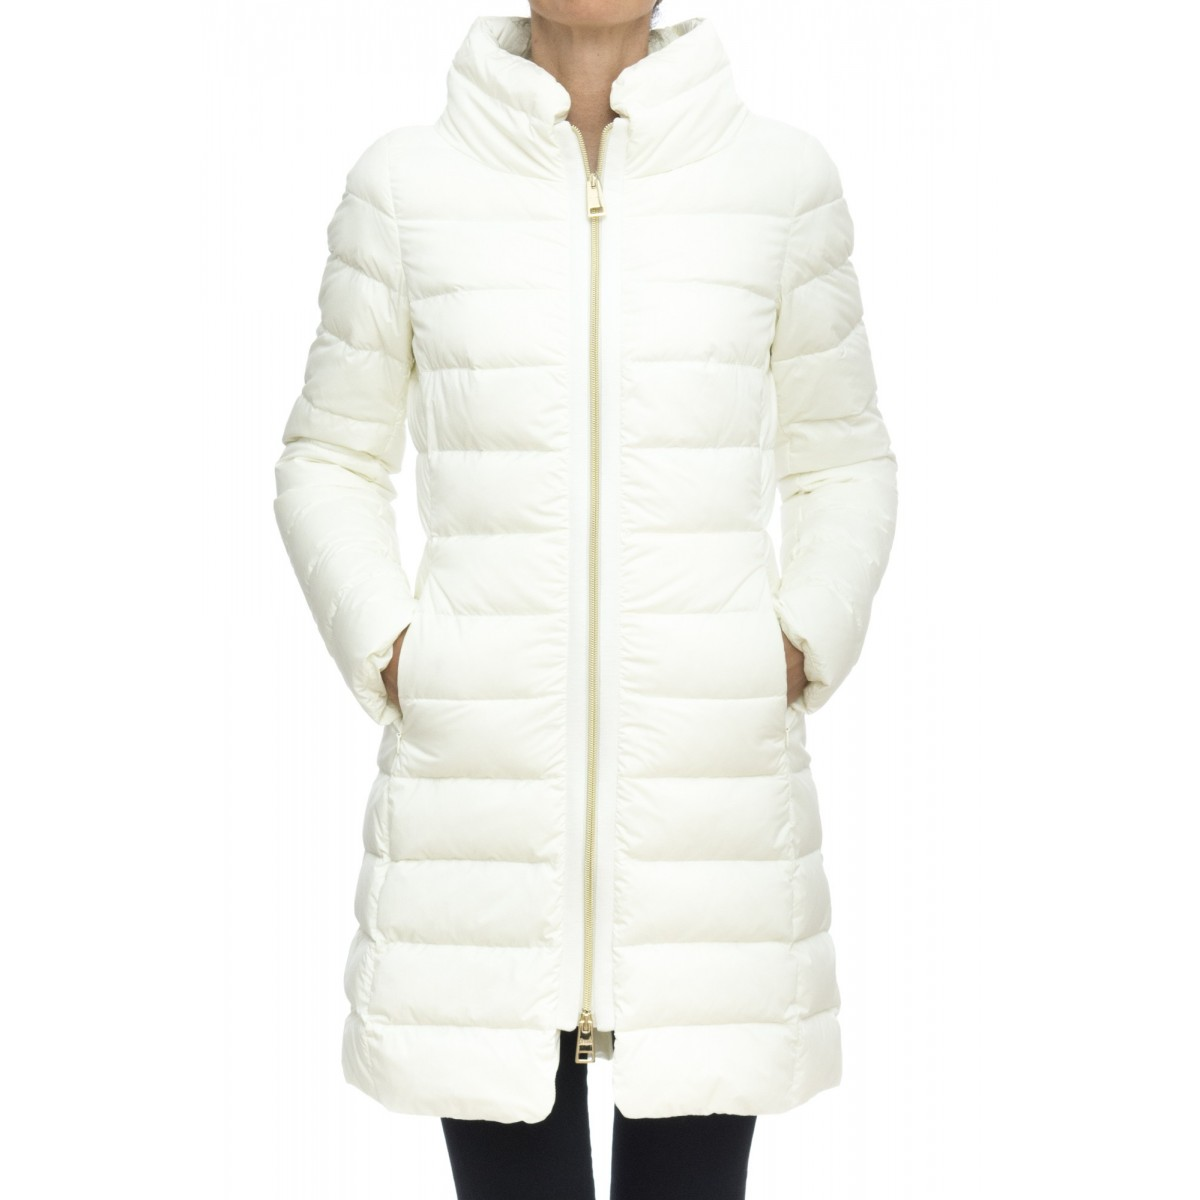 Down jacket Woman - Pi0656d 19288